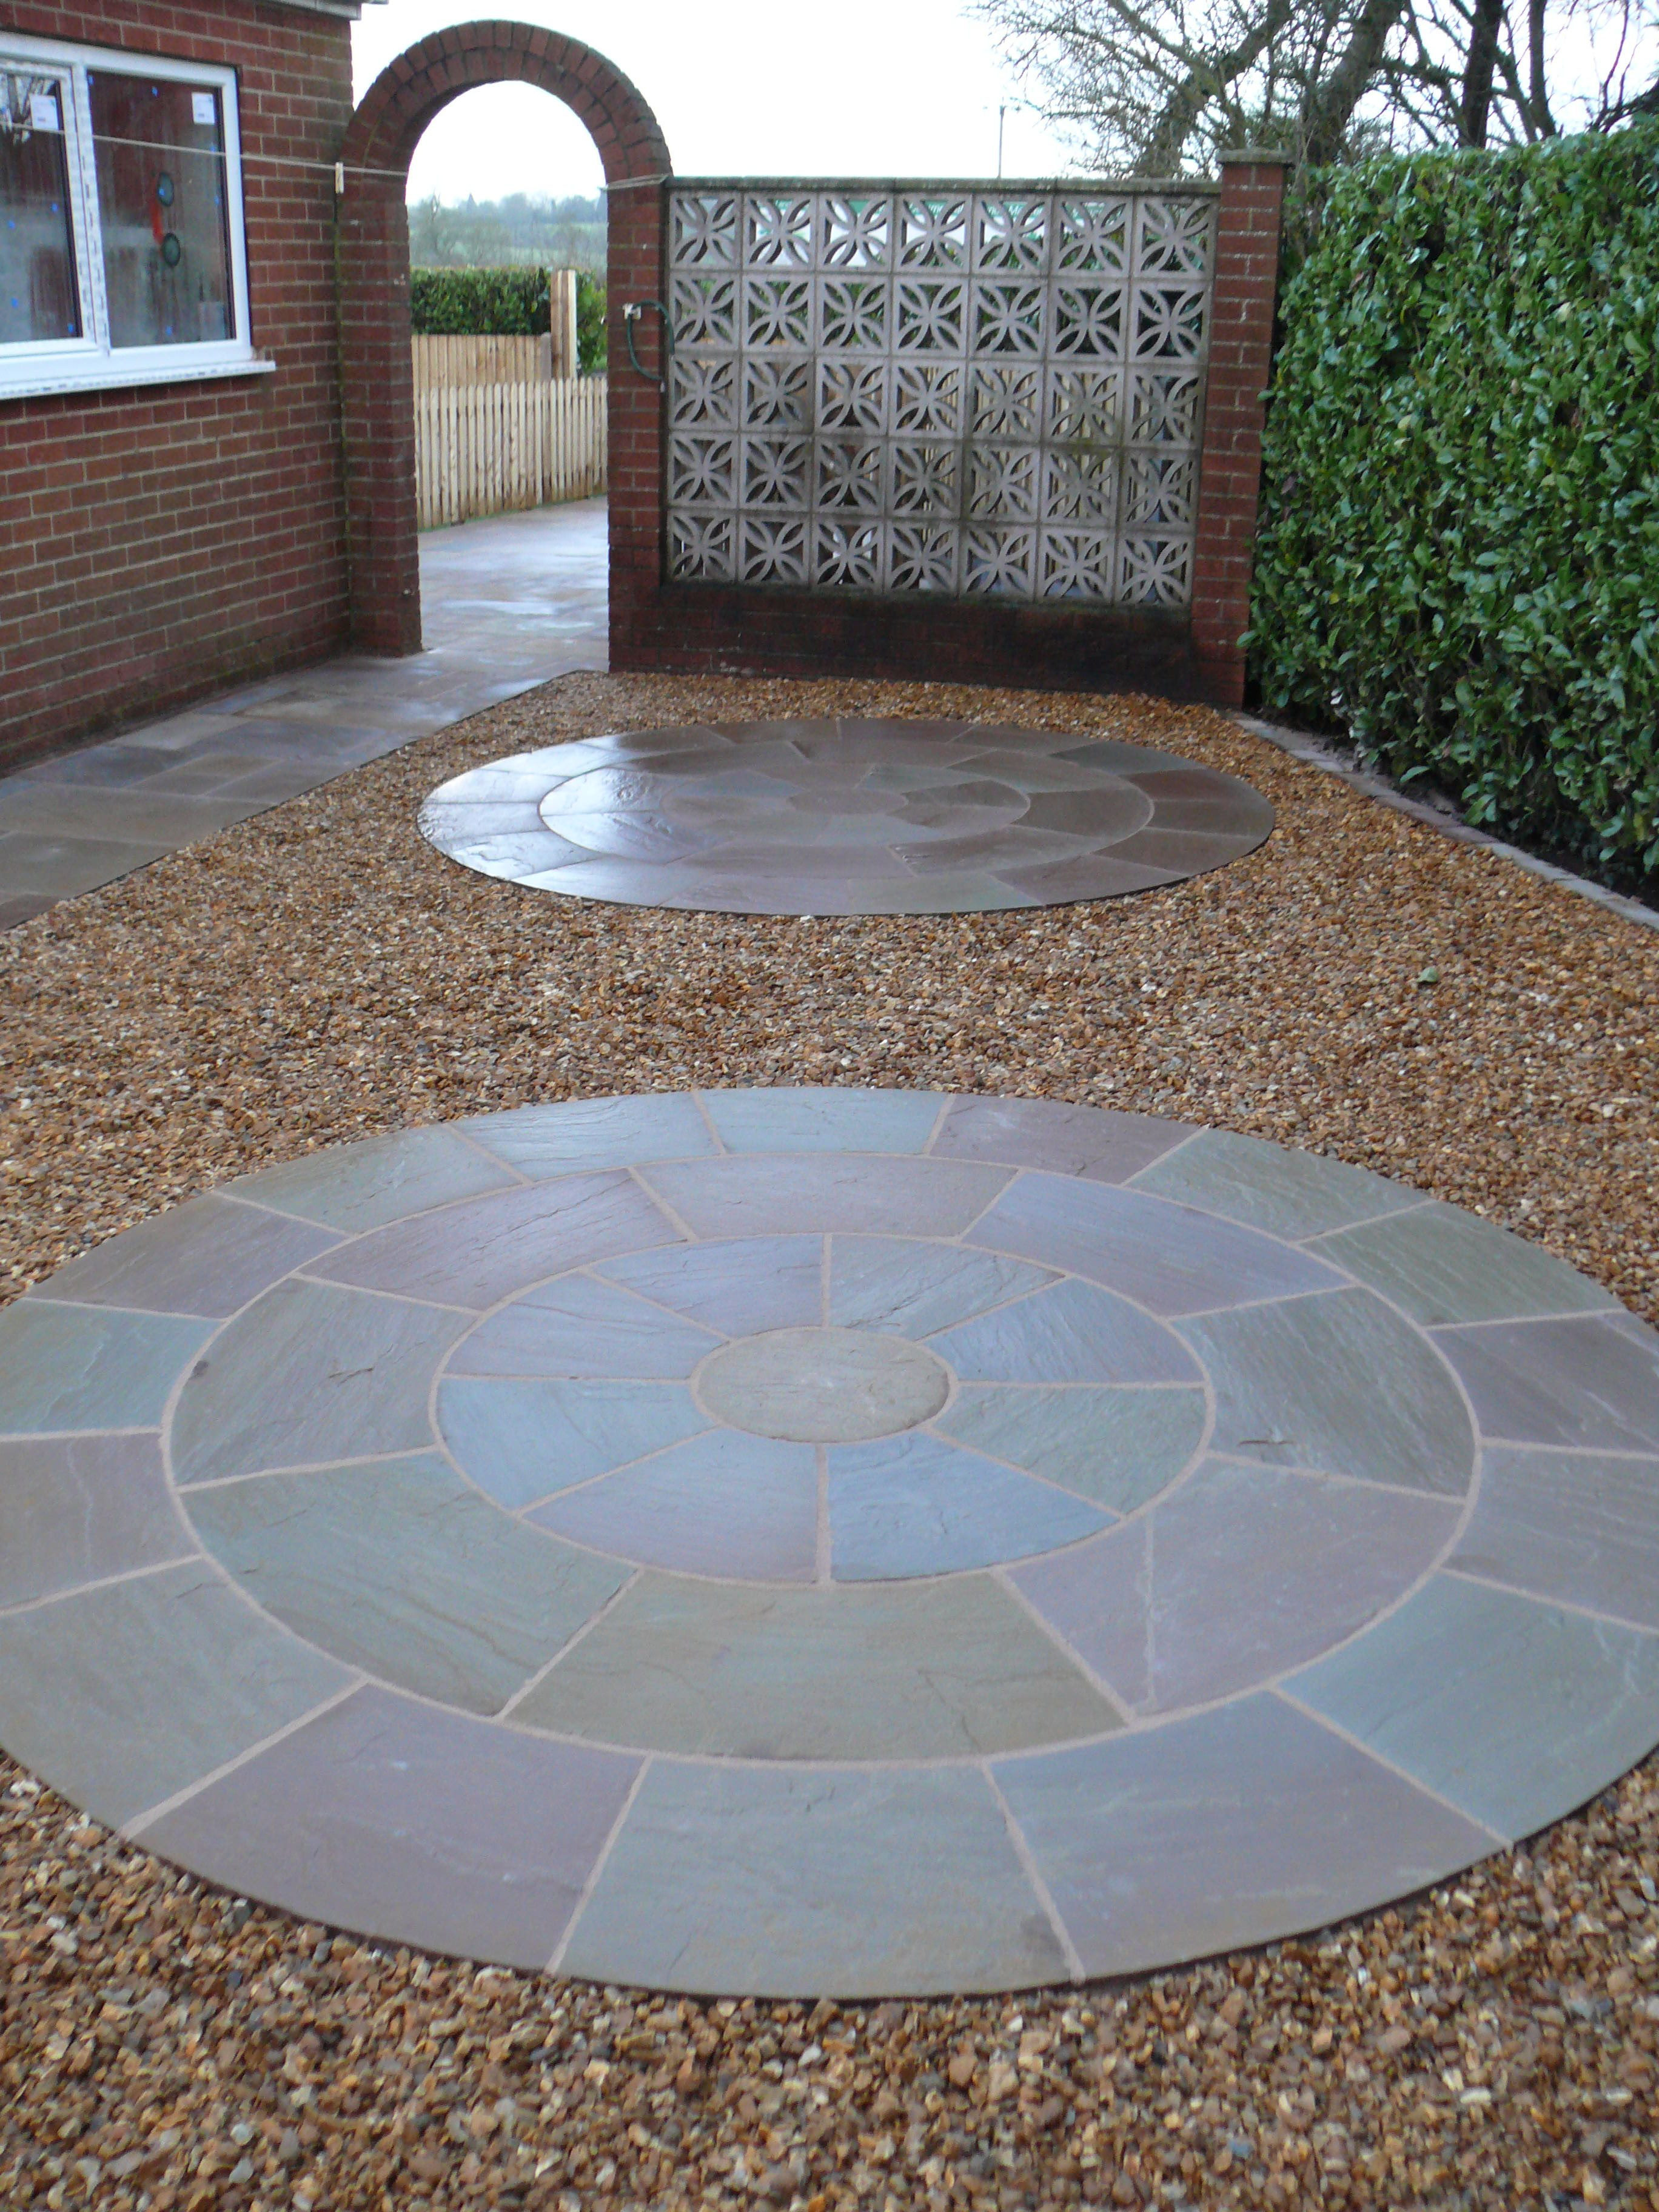 Gravel Area with Stone Circles - Landscaping in Westlands